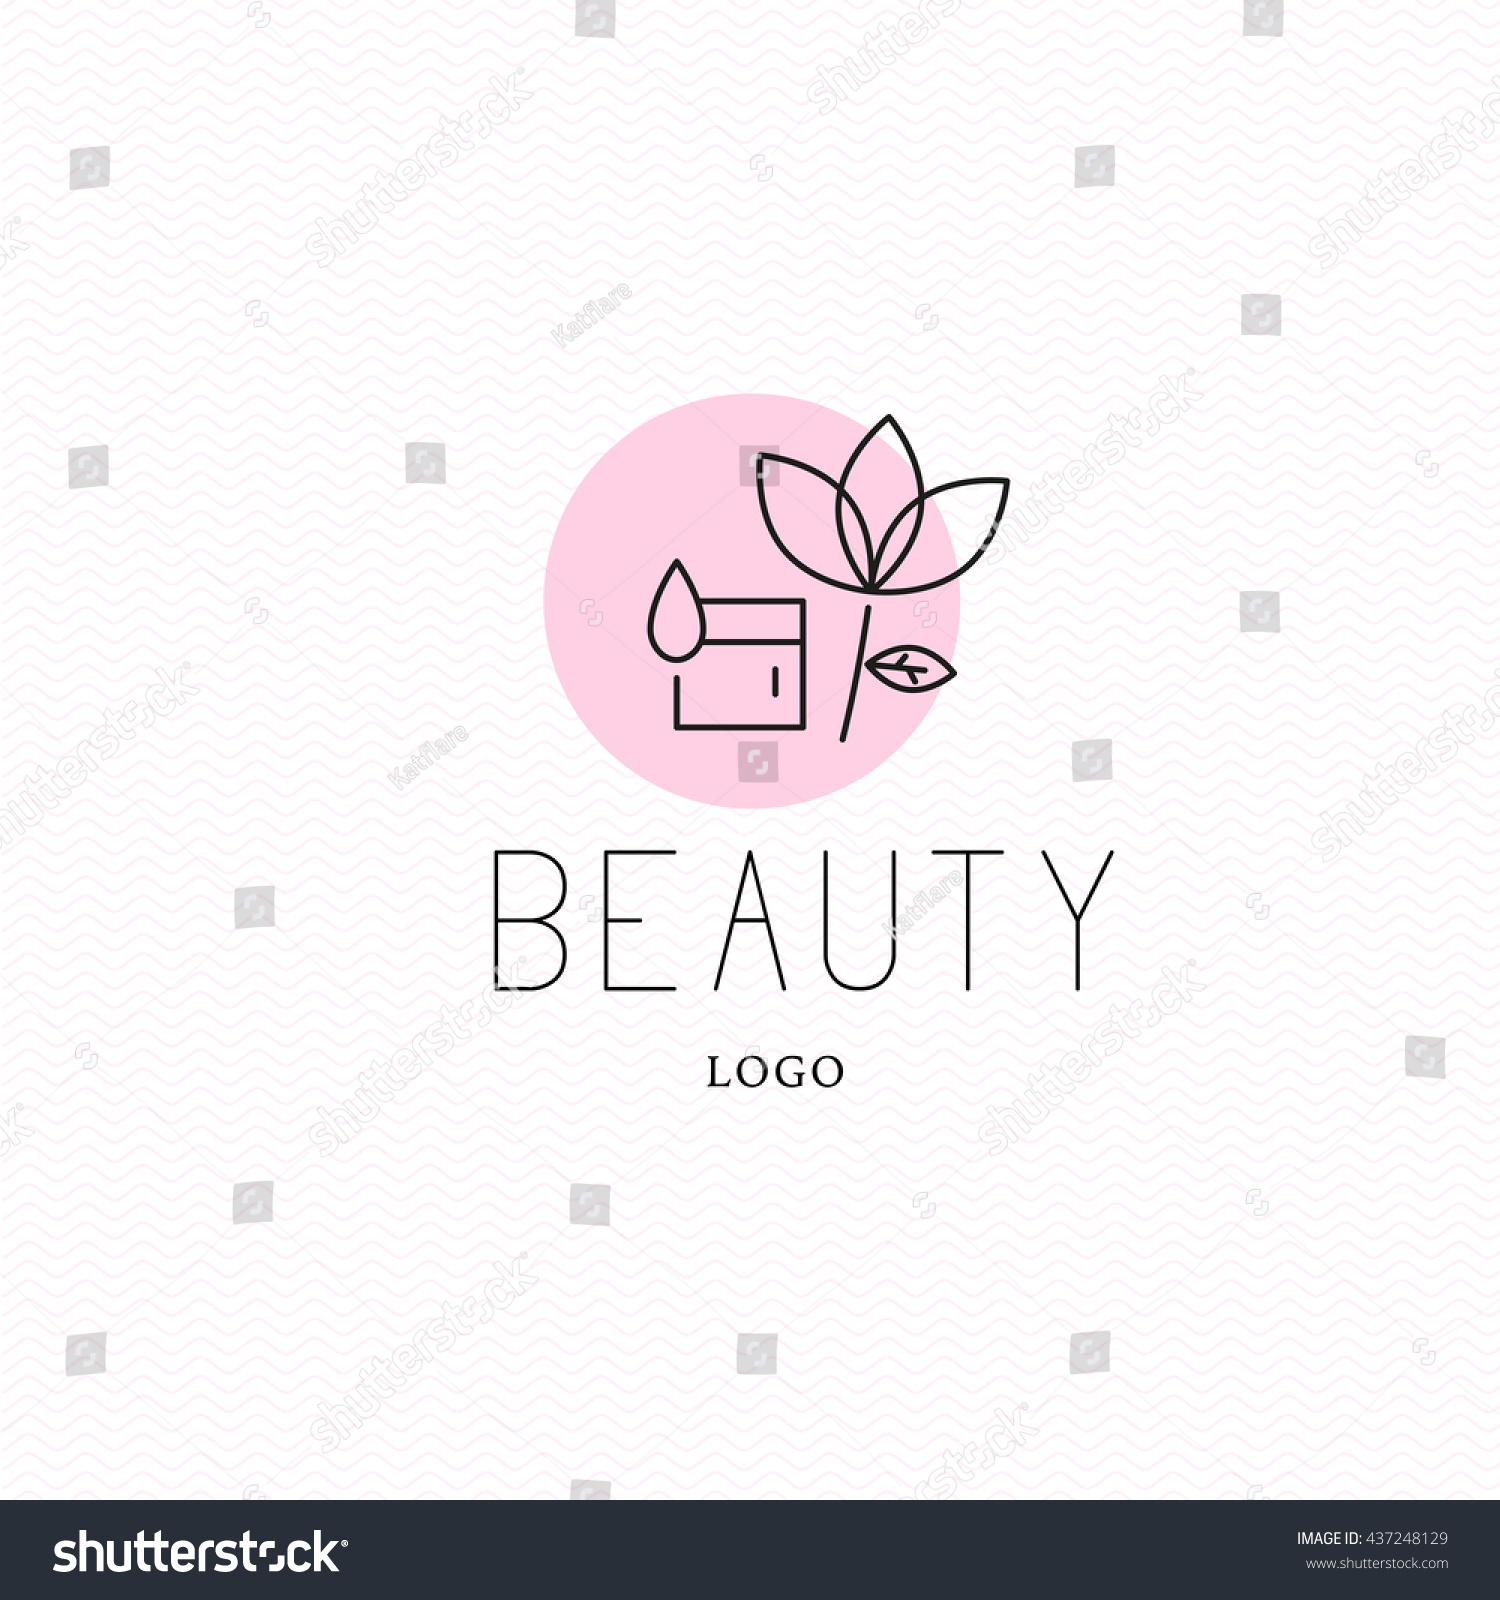 Fascinating Beauty Salon Logo Creator 76 For Your Make A ...